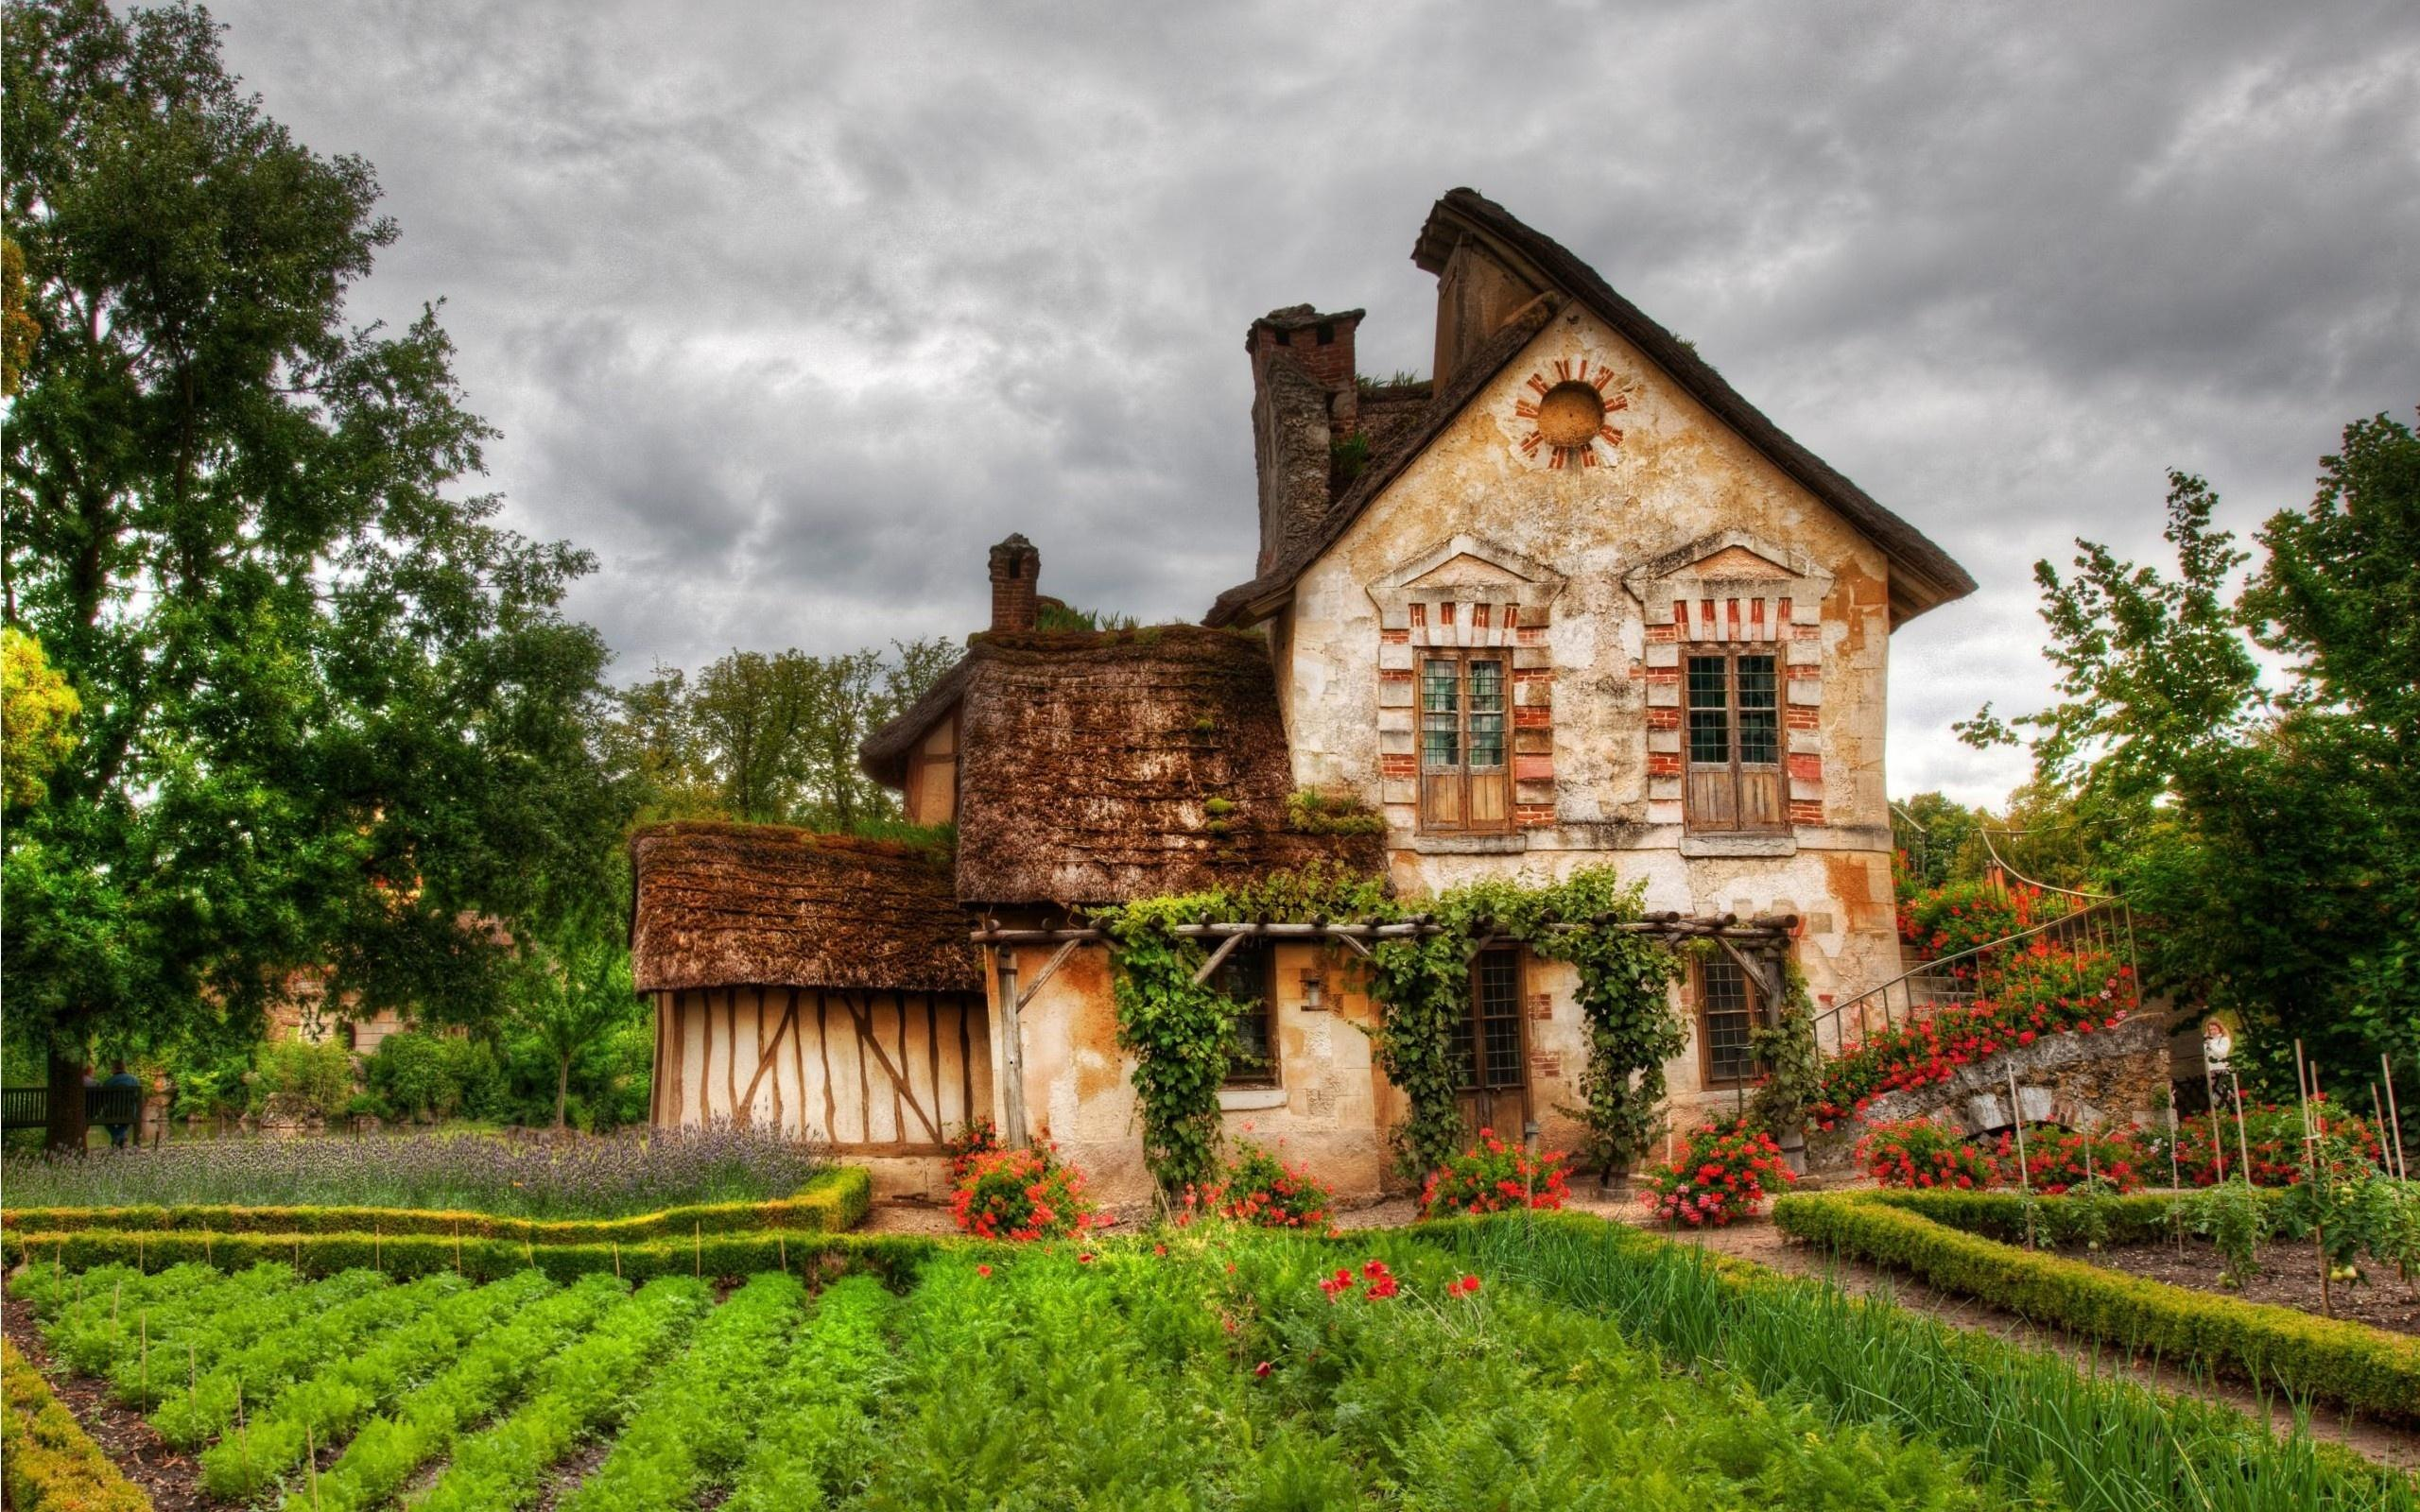 Hq old house wallpaper full hd pictures for House image full hd